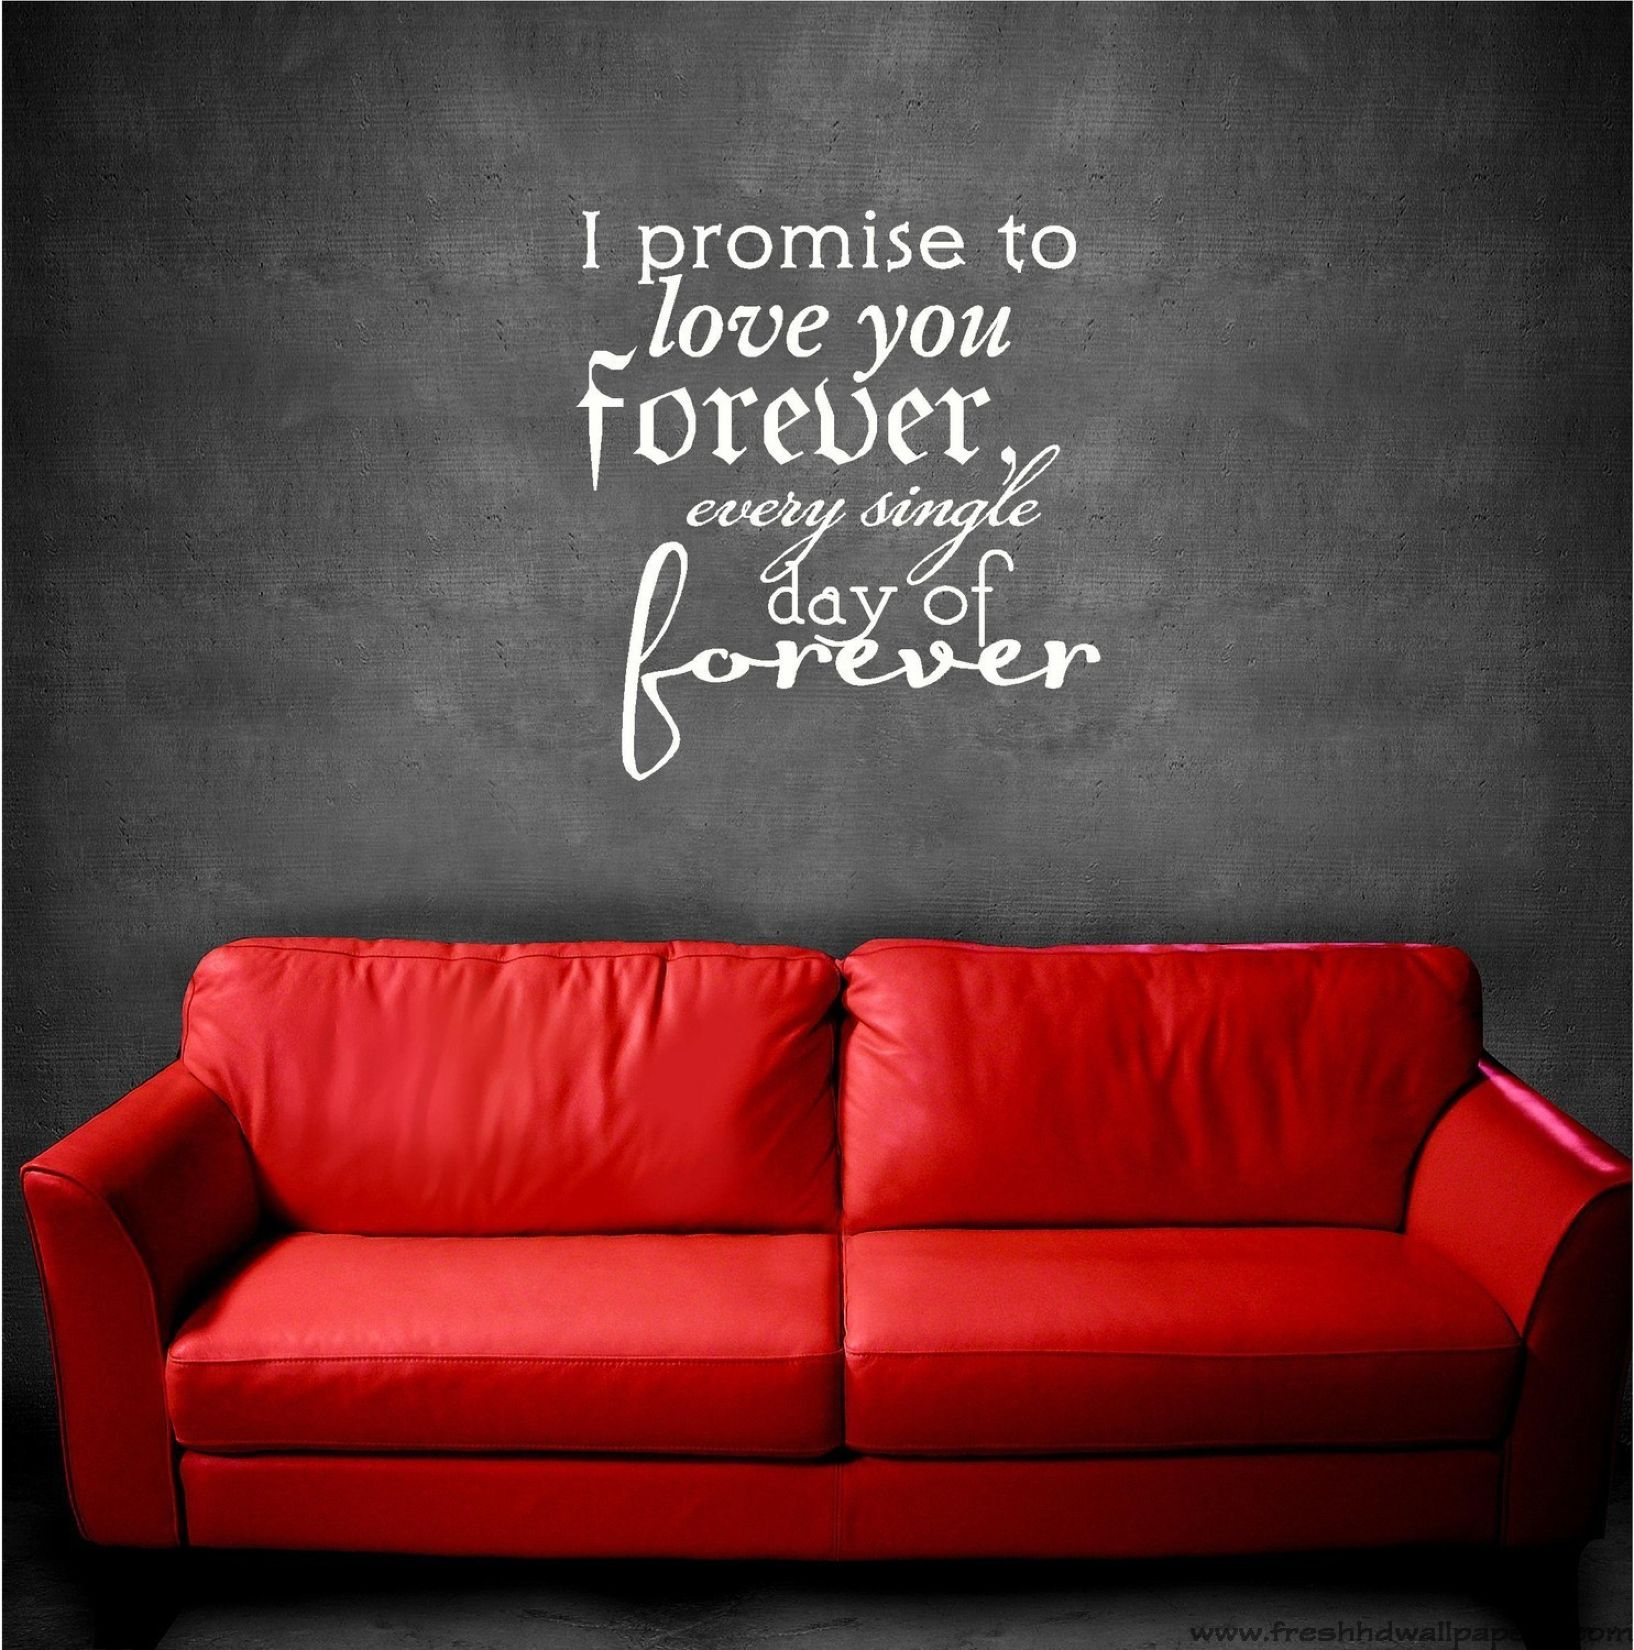 Download free HD Promise Day Love You Quotes Background Desktop Wallpaper, image